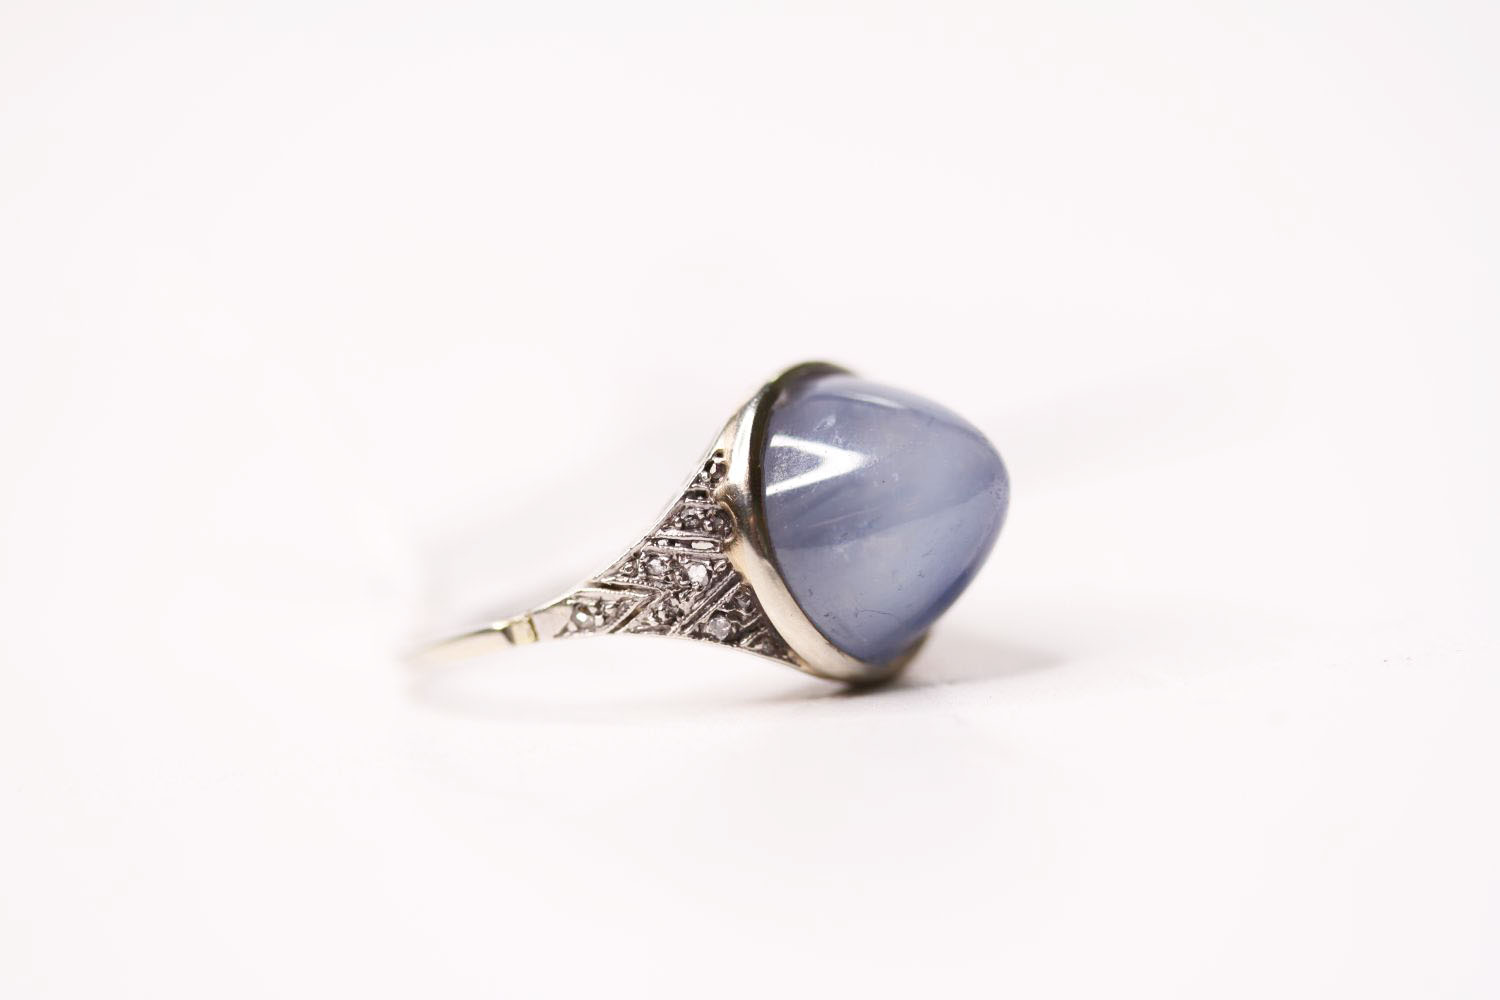 Cabochon Star Sapphire Ring, set with a cabochon cut star sapphire, art deco style, size O. - Image 2 of 4